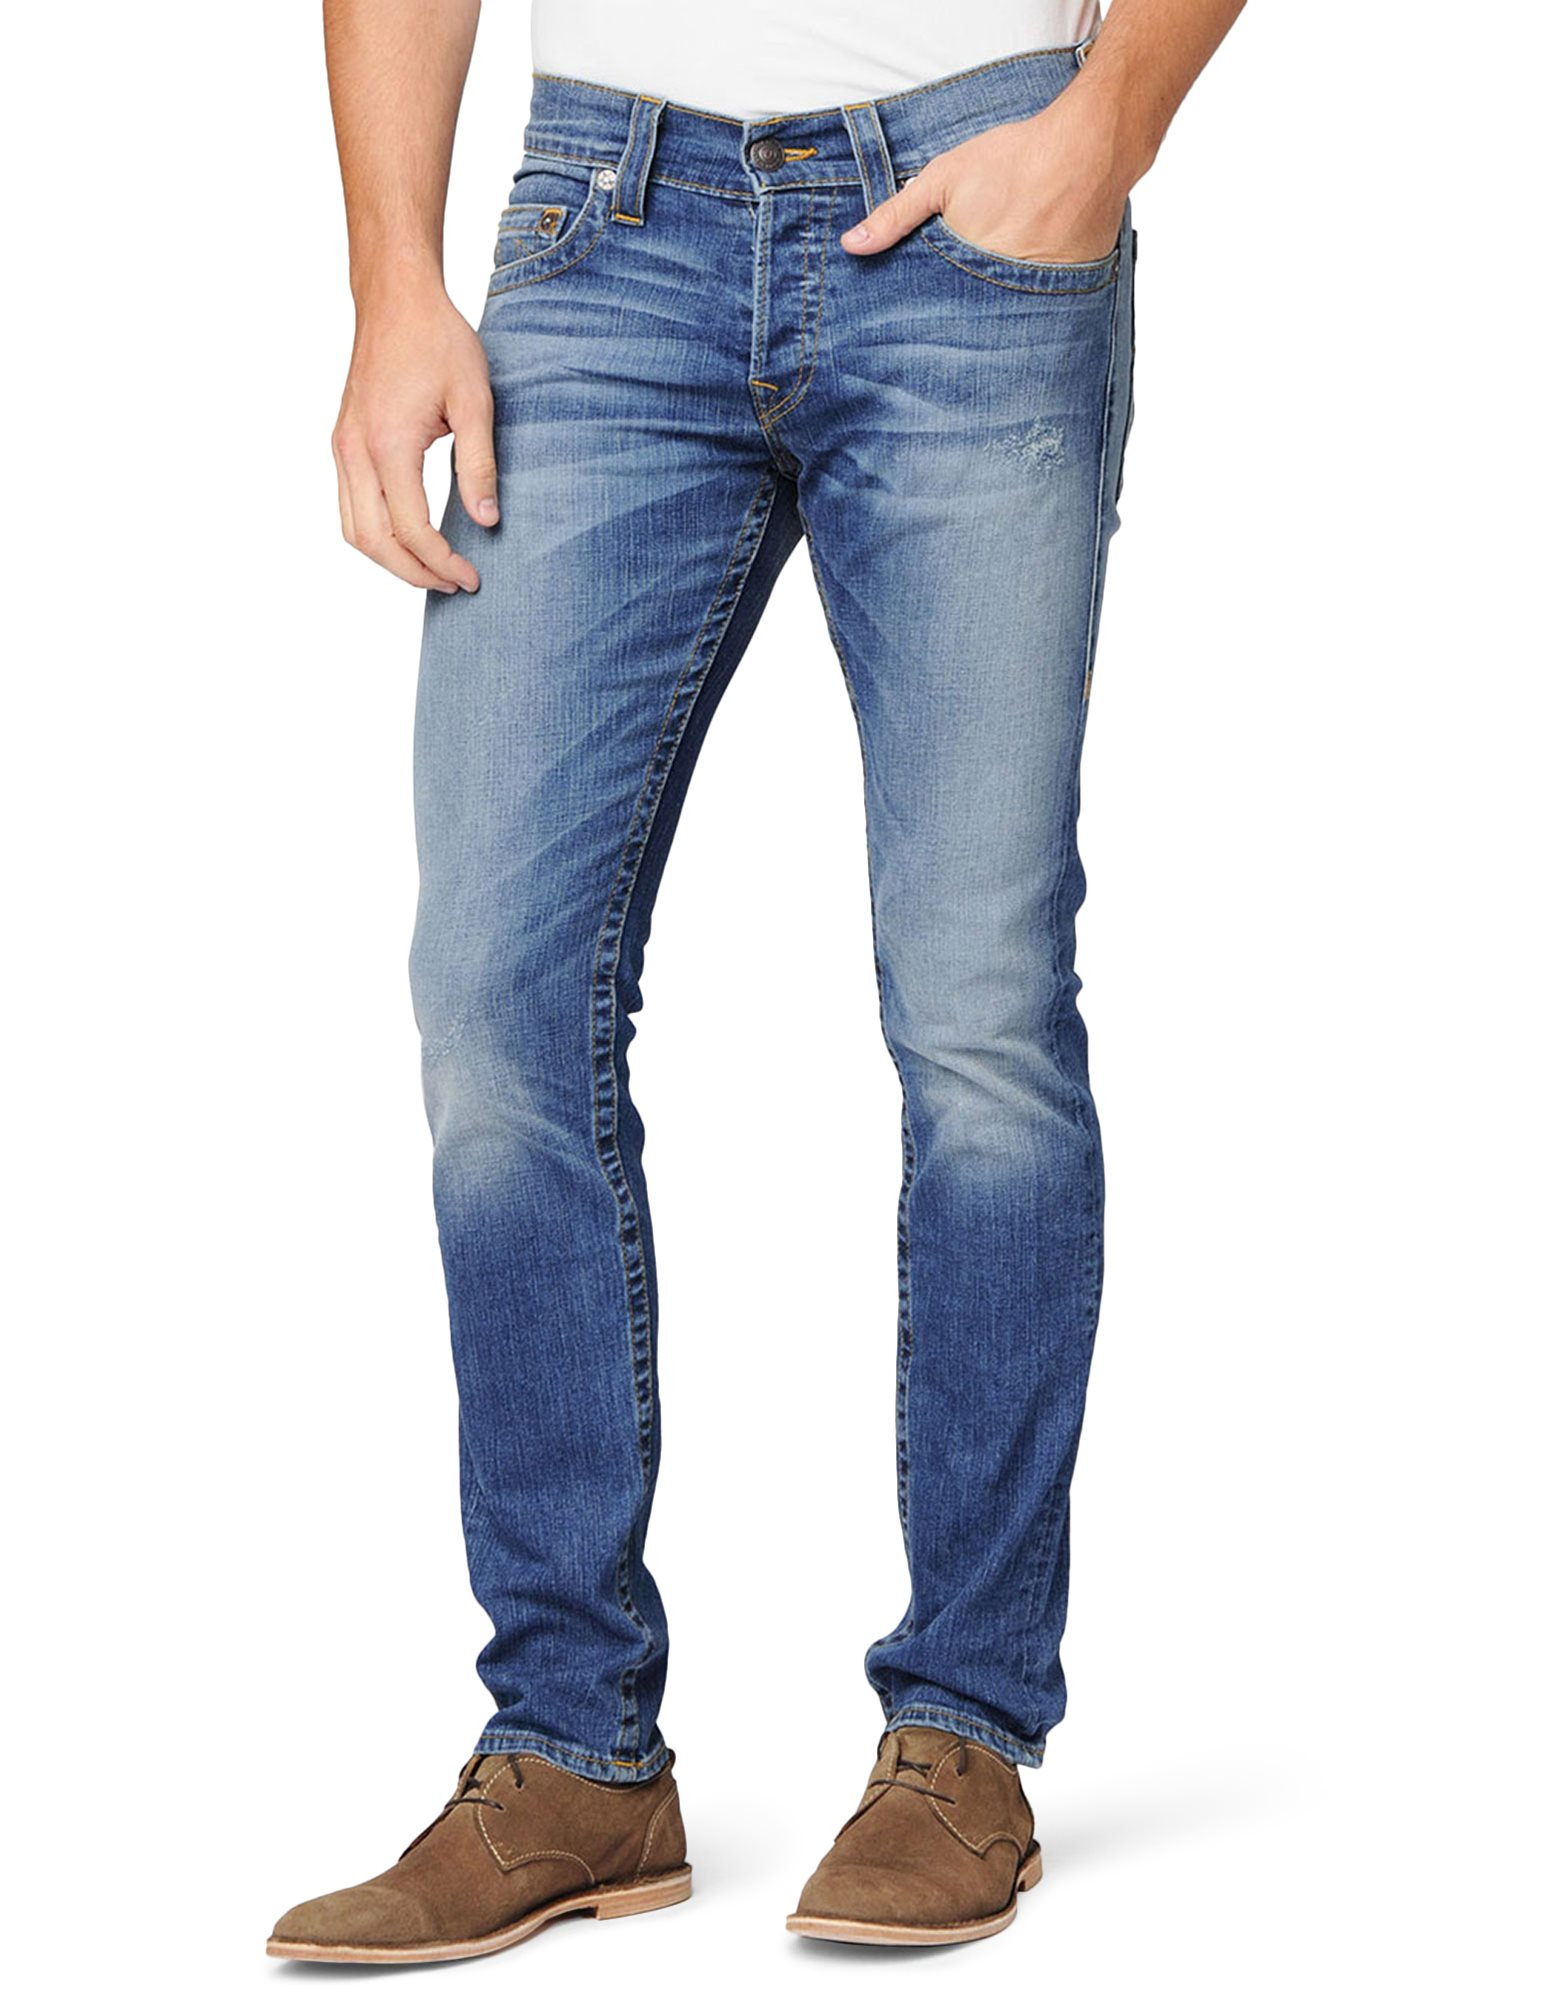 true religion Find the latest true religion men's clothing, fashion & more at drjays.